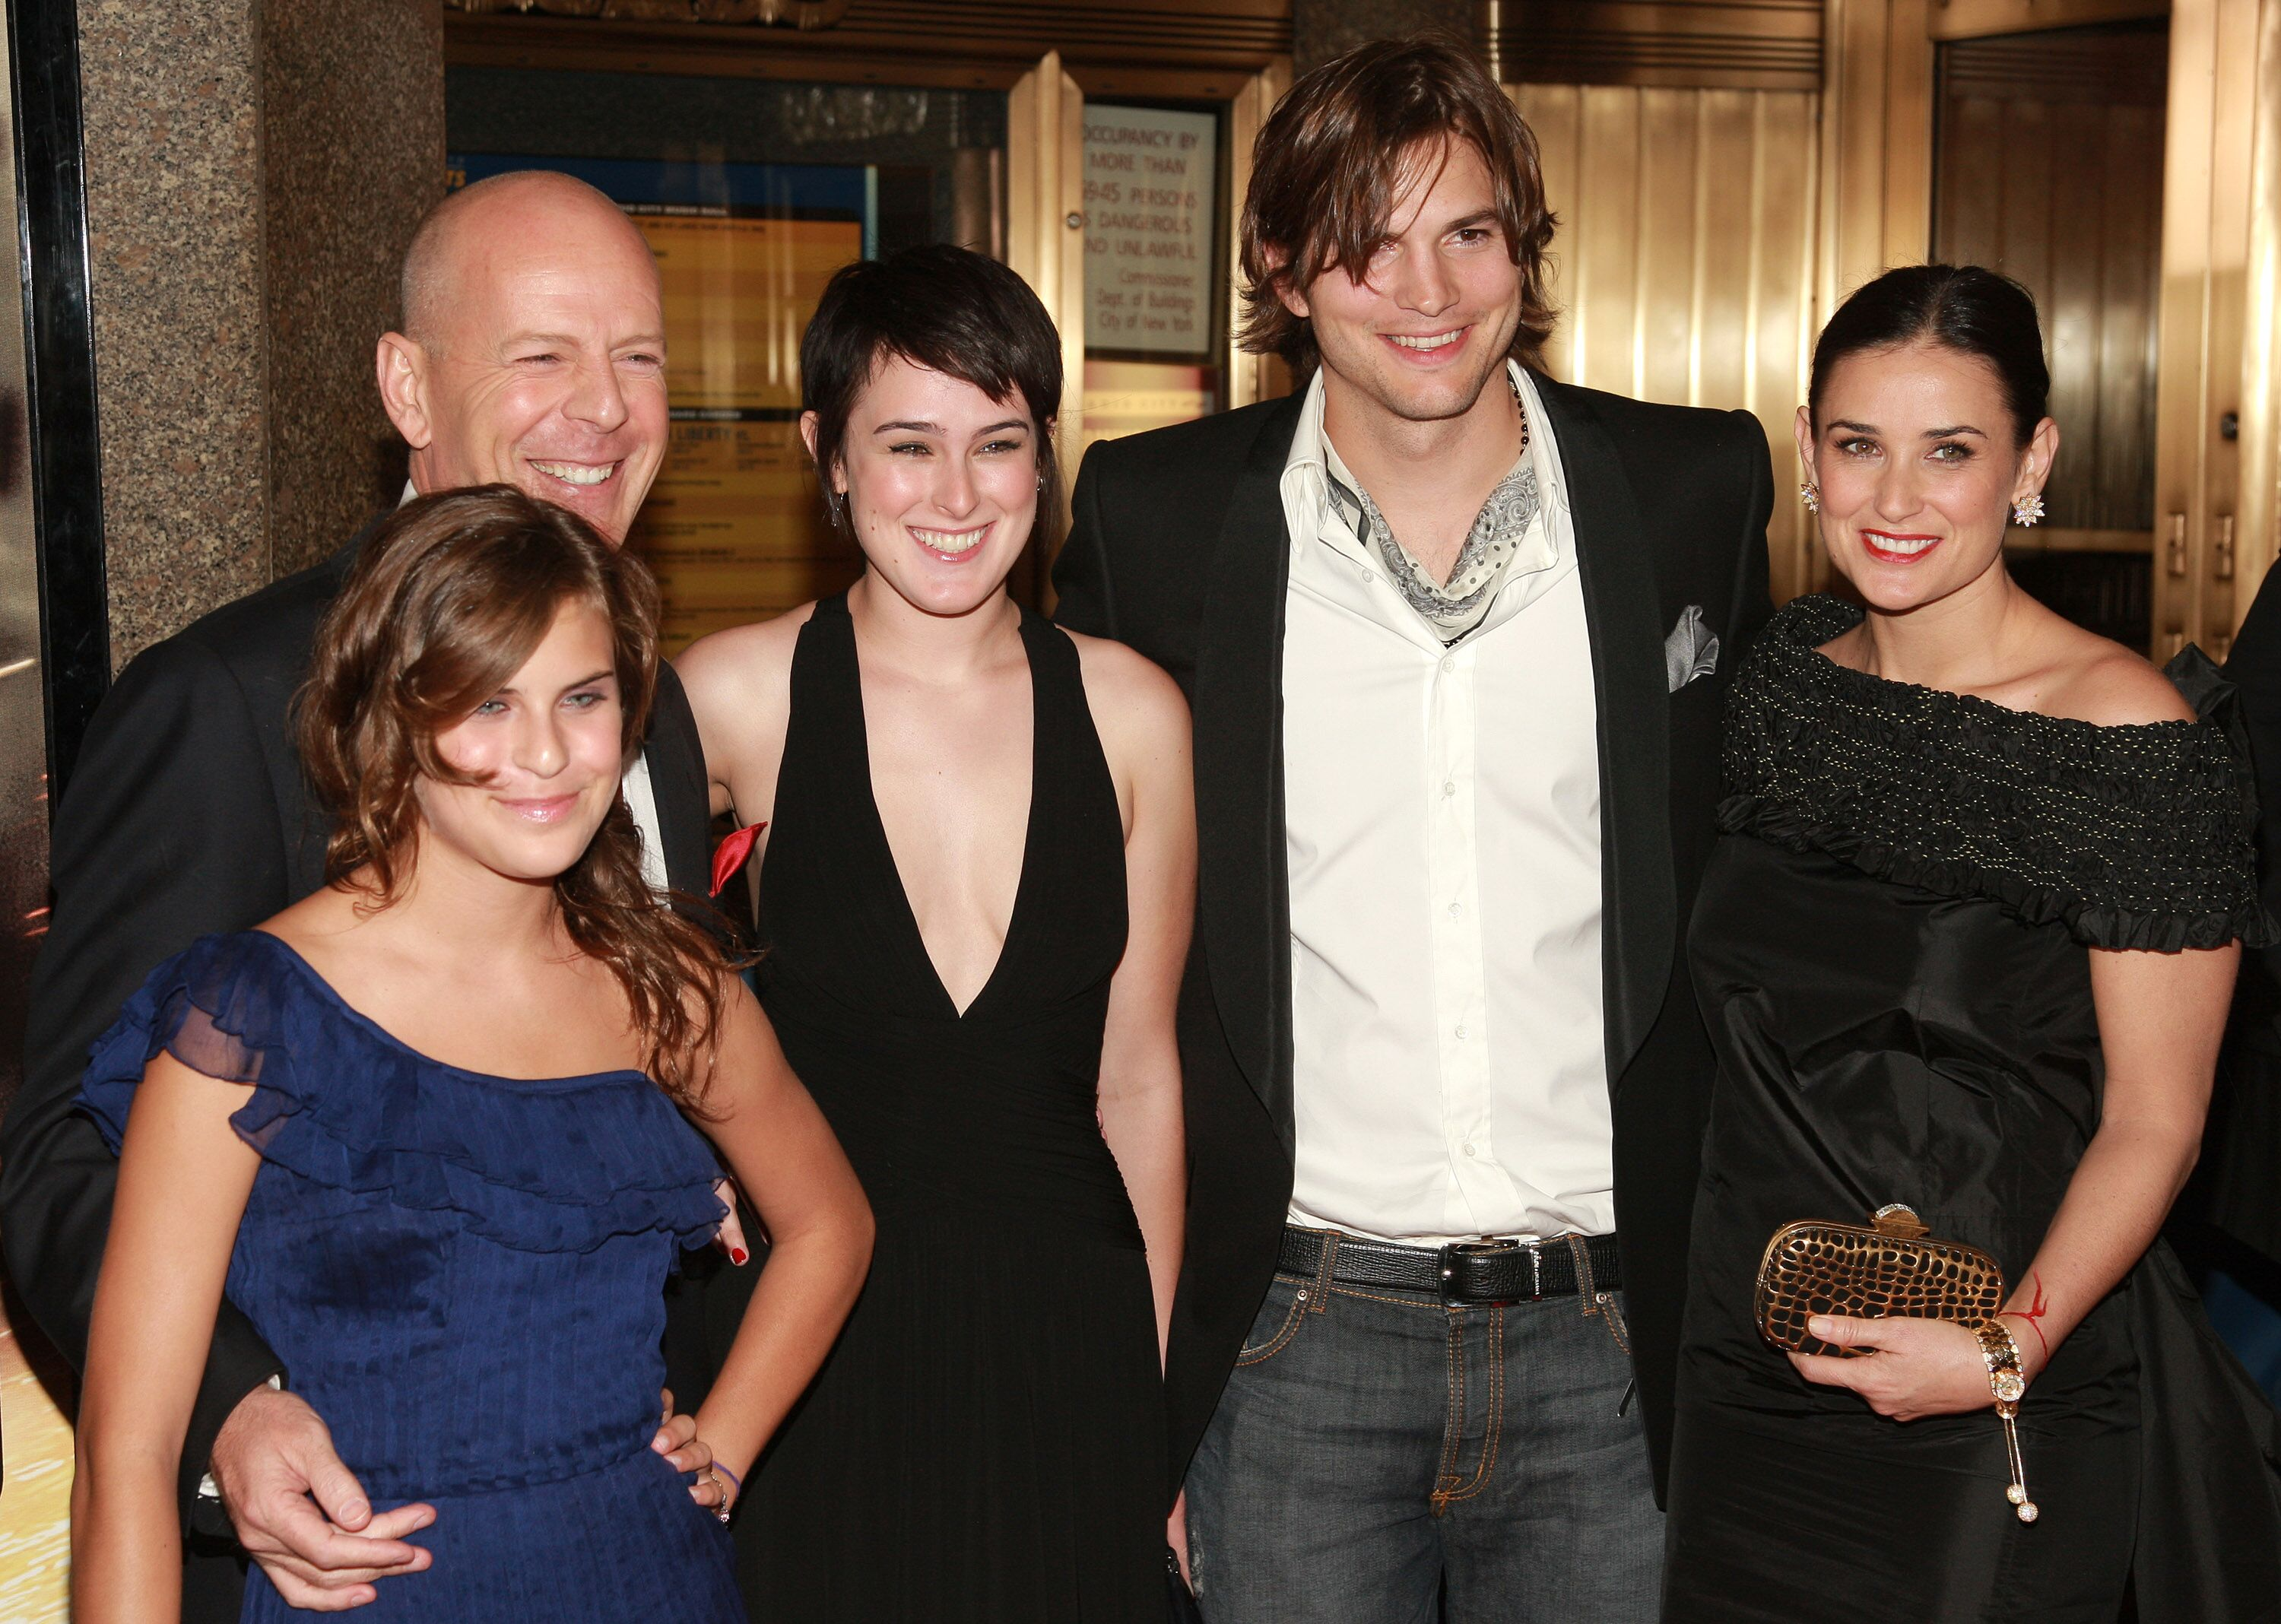 """Ashton Kutcher, Demi Moore, Bruce Willis, Rumer and Tallulah Willis at the premiere of """"Live Free Or Die Hard"""" in 2007, in New York 